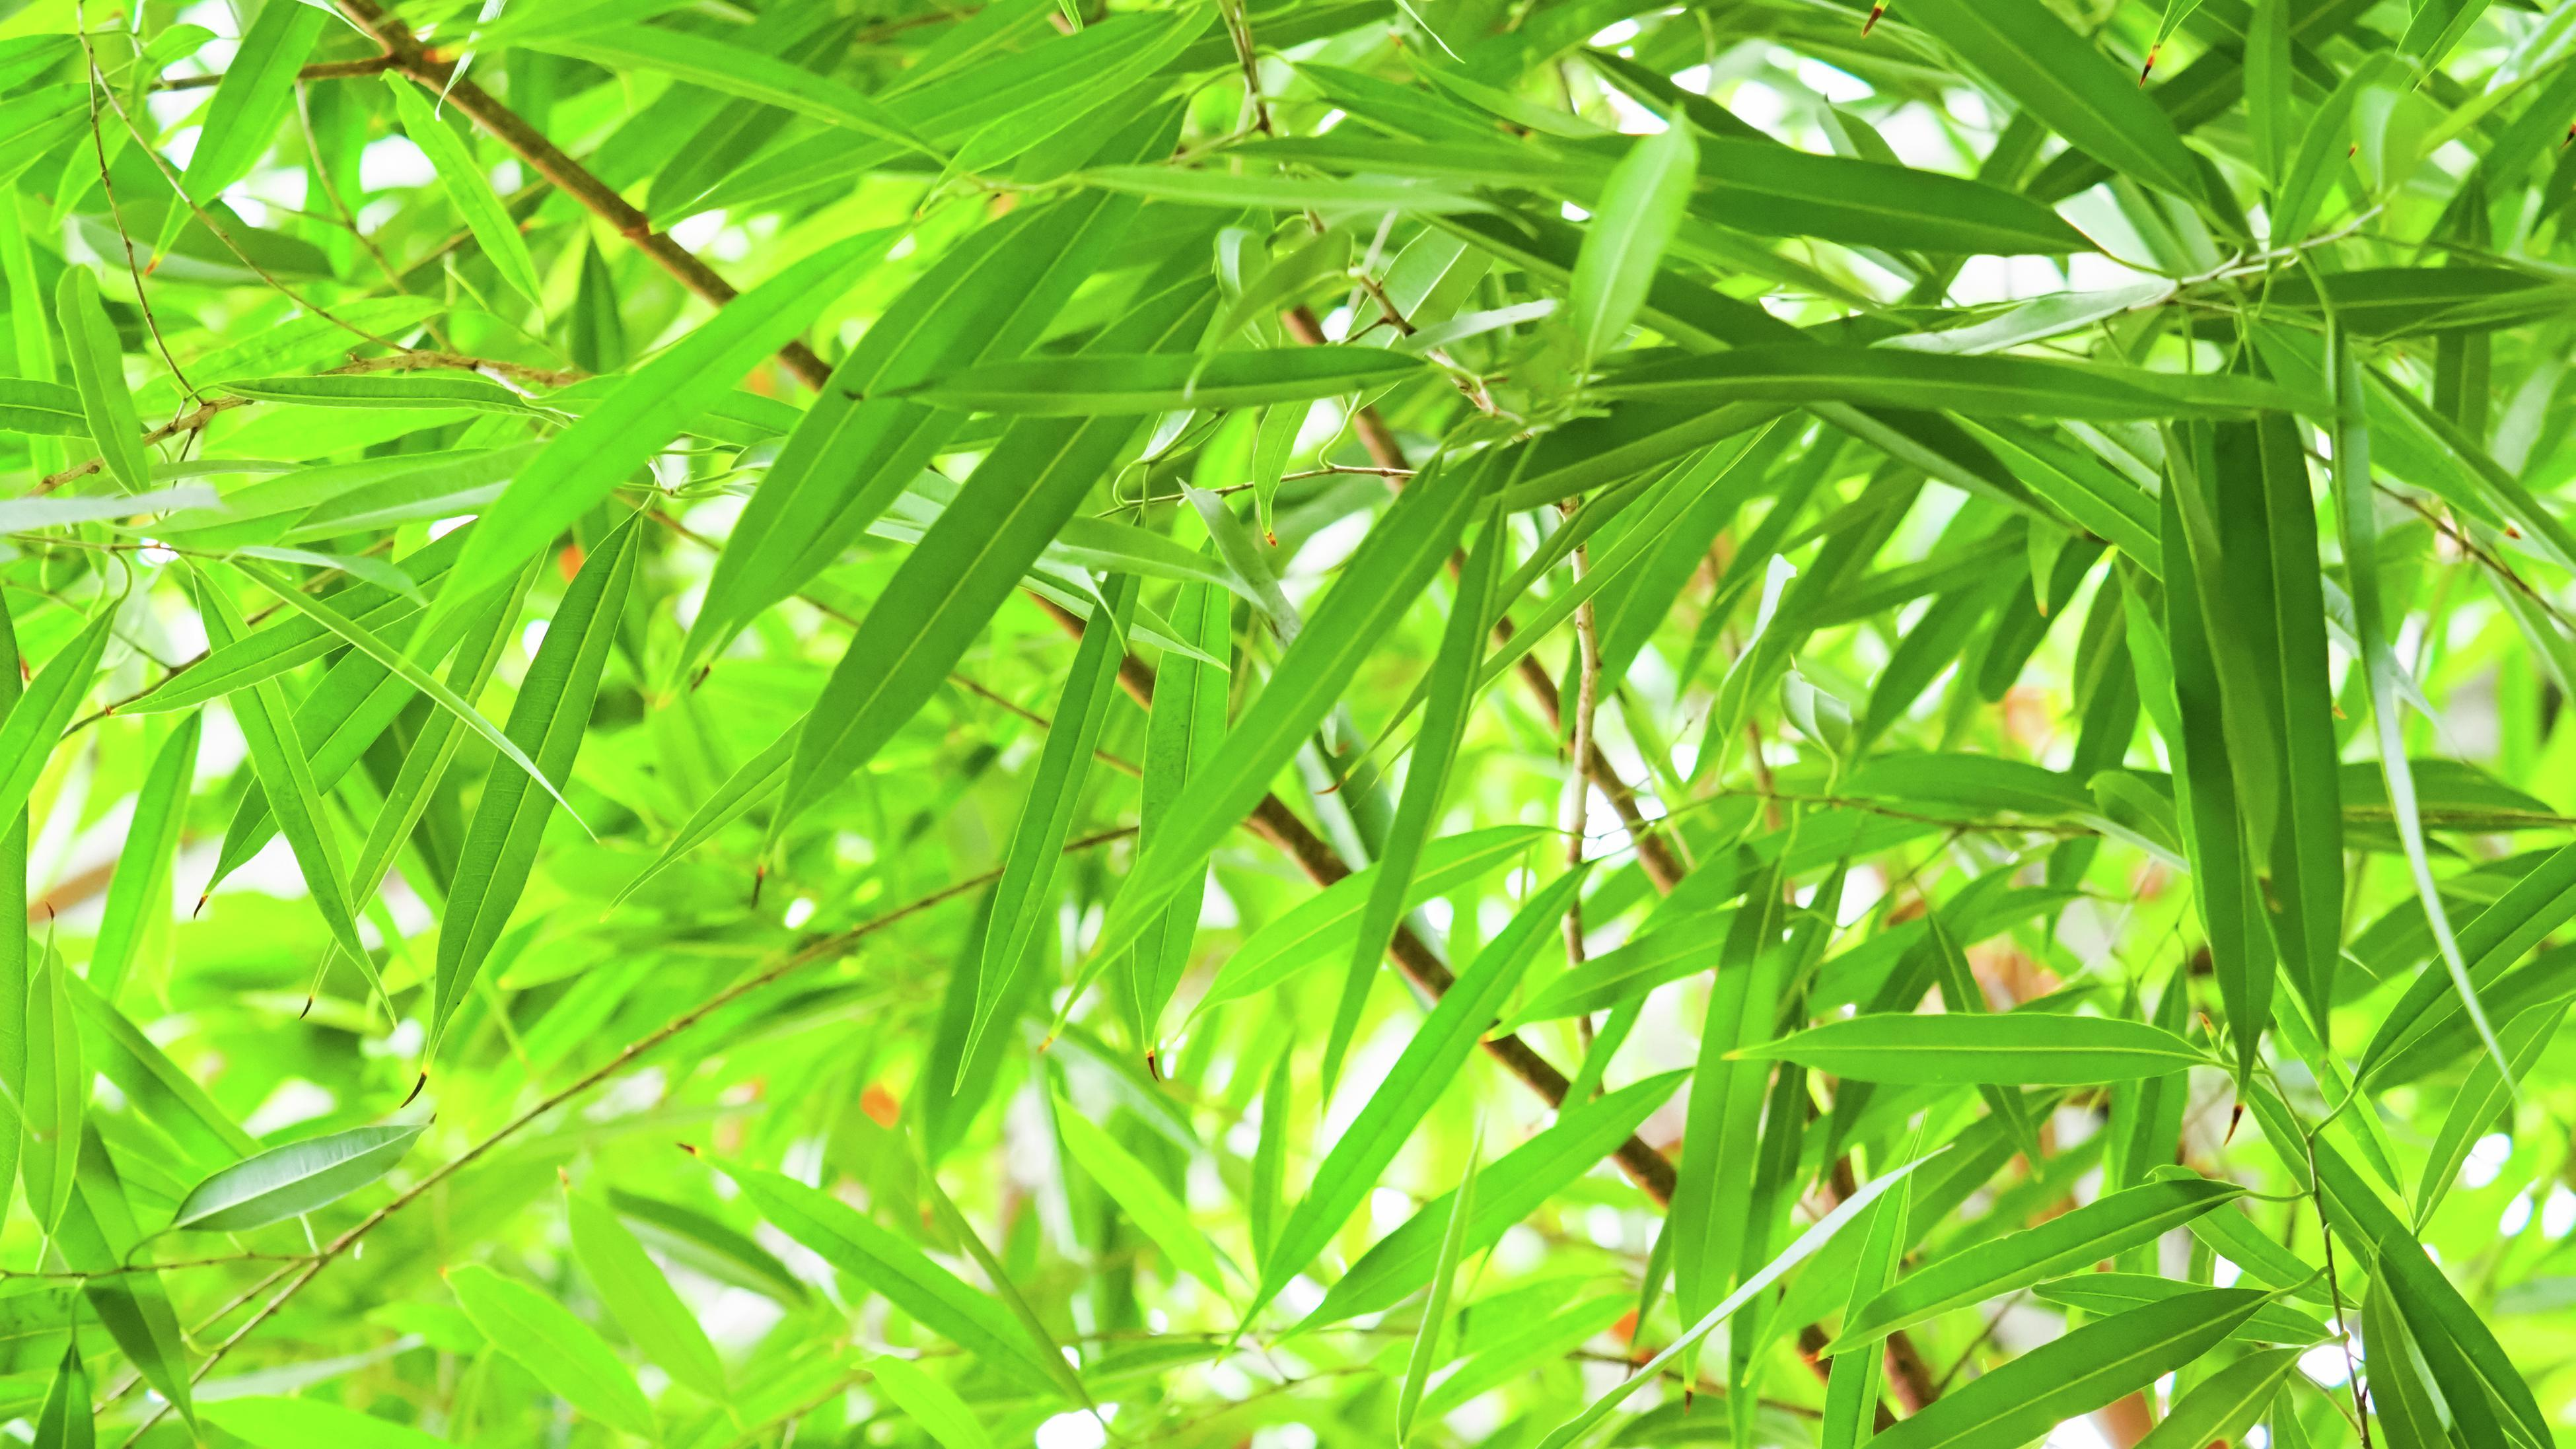 Bamboo plants with green leaves in a garden